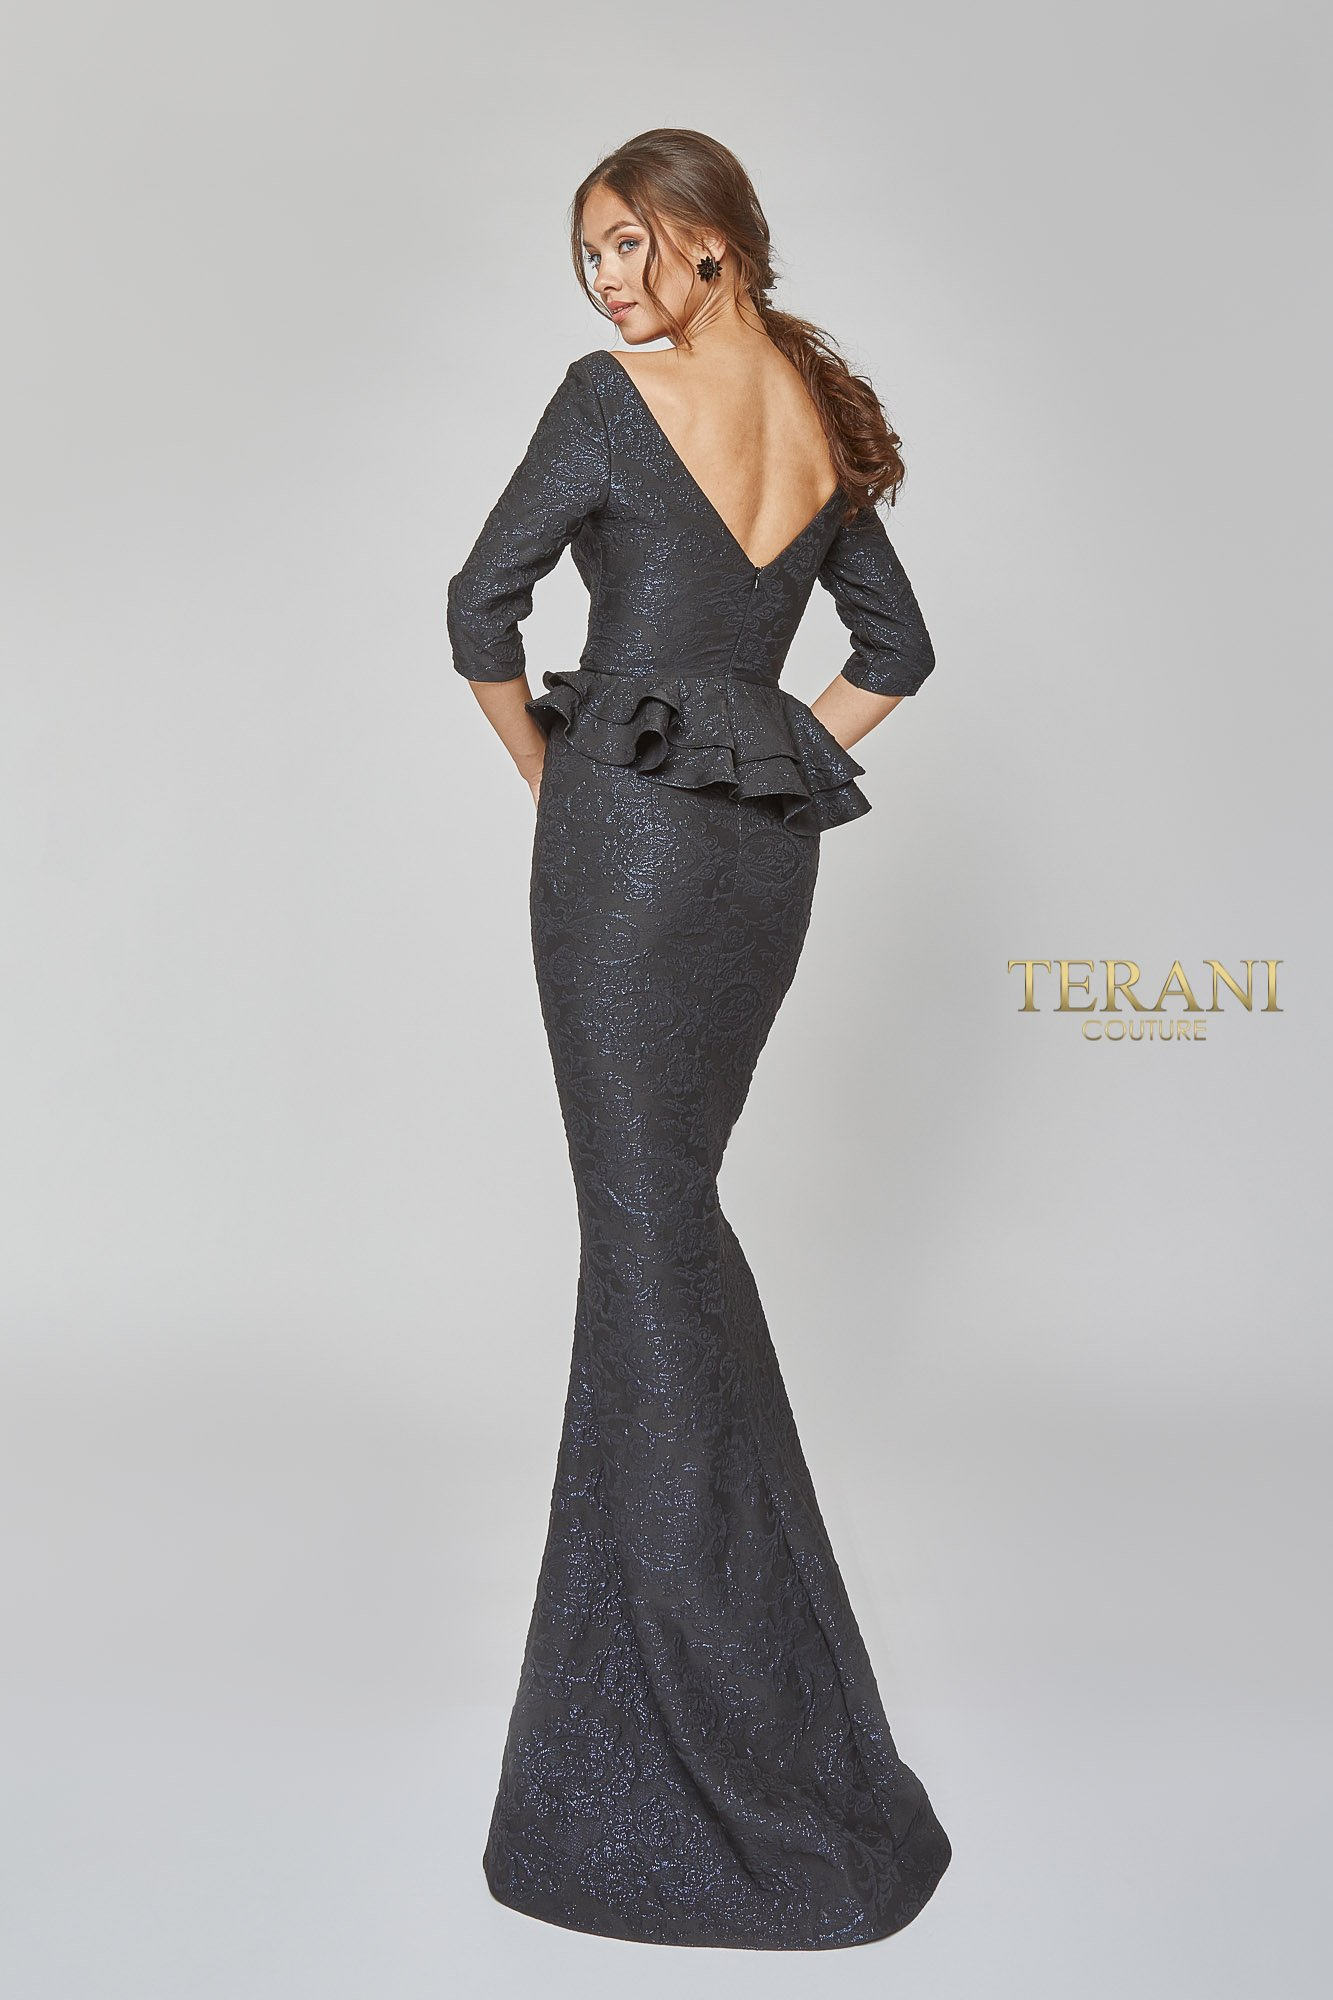 Mother of the Bride Boat Neck Stretch Flower Detail Gown - 1921m0729